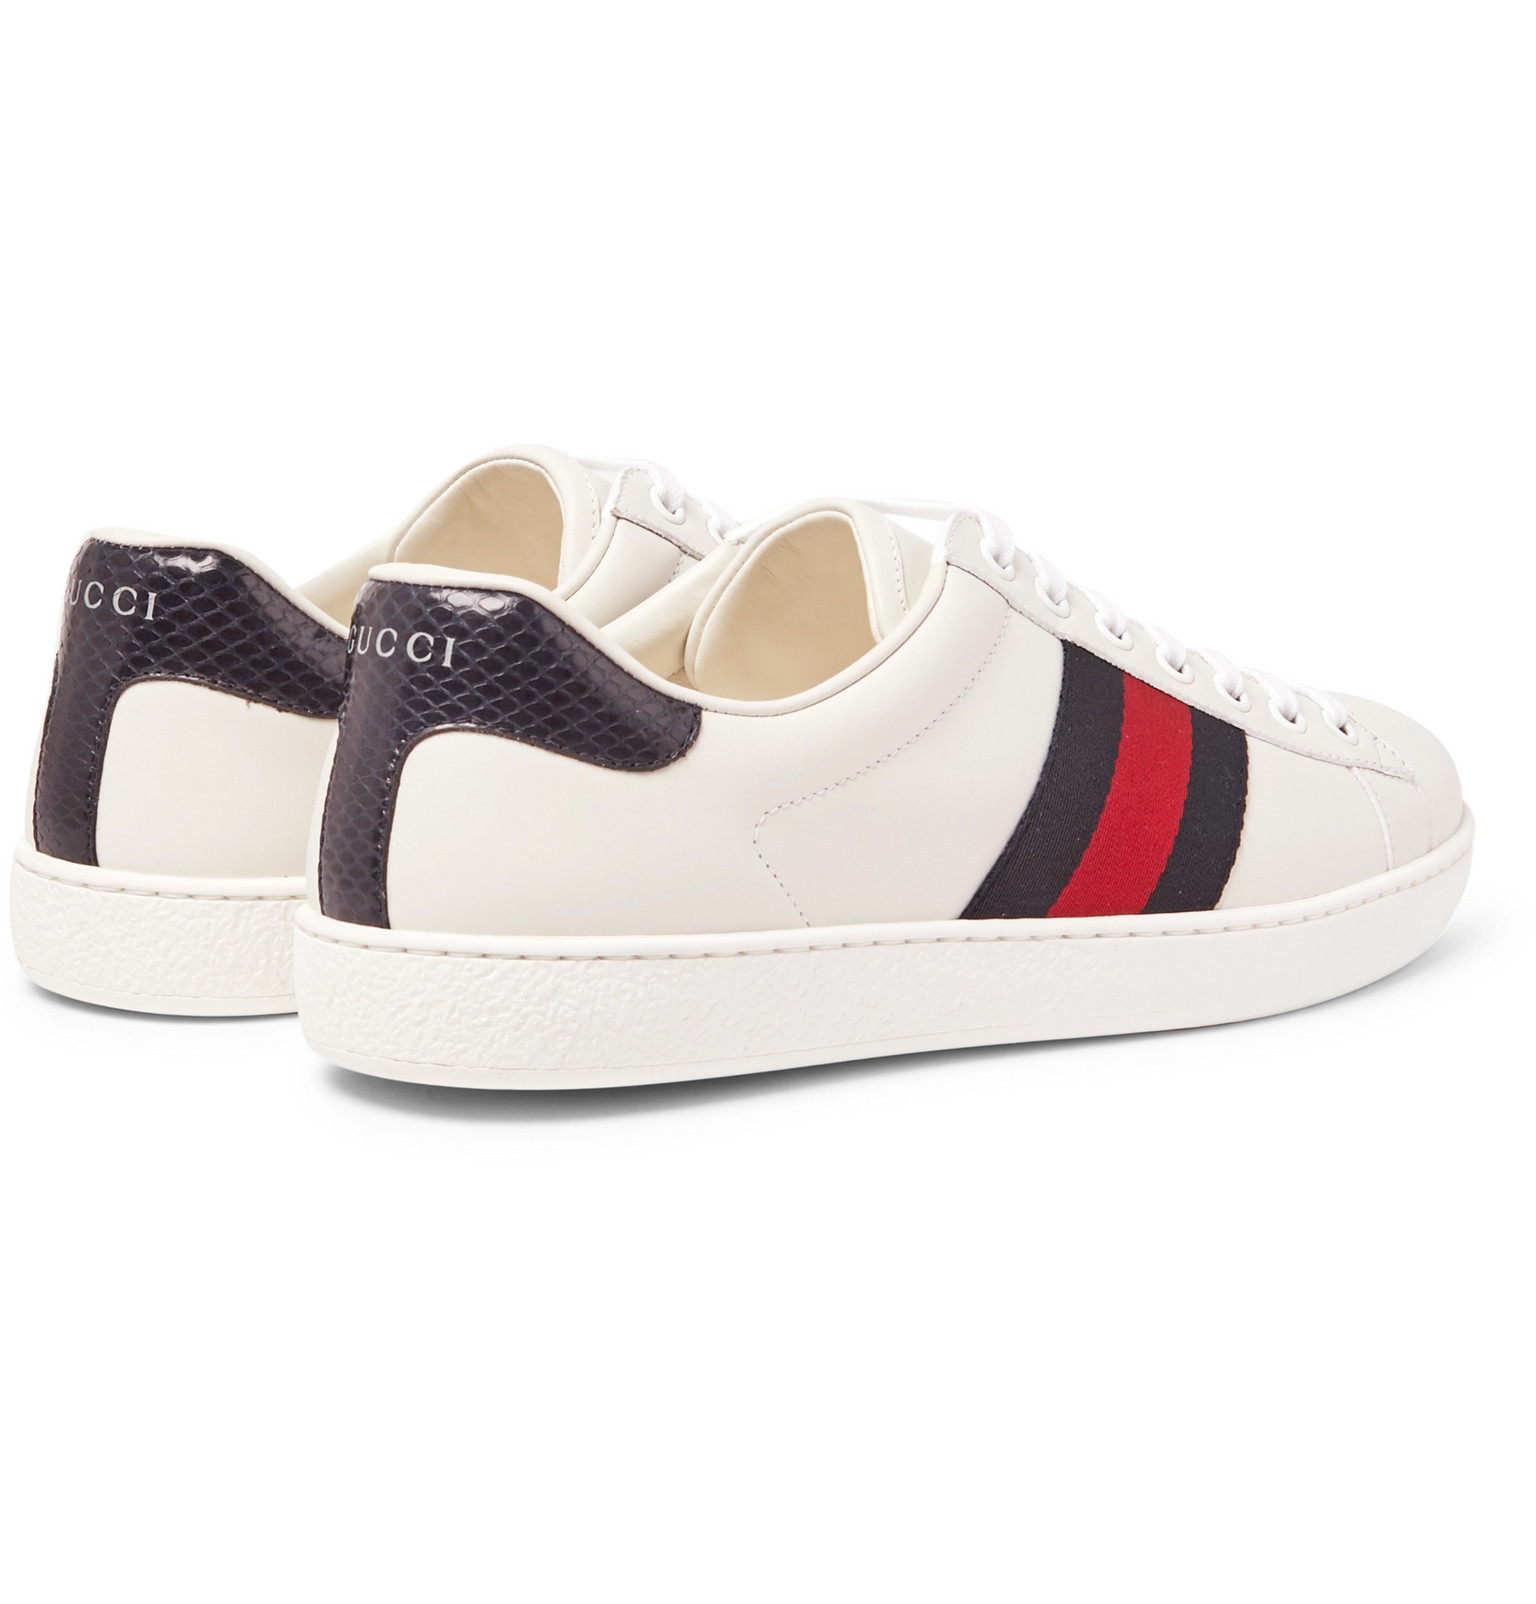 a4c719355ac Gucci - Ace Watersnake-Trimmed Leather Sneakers